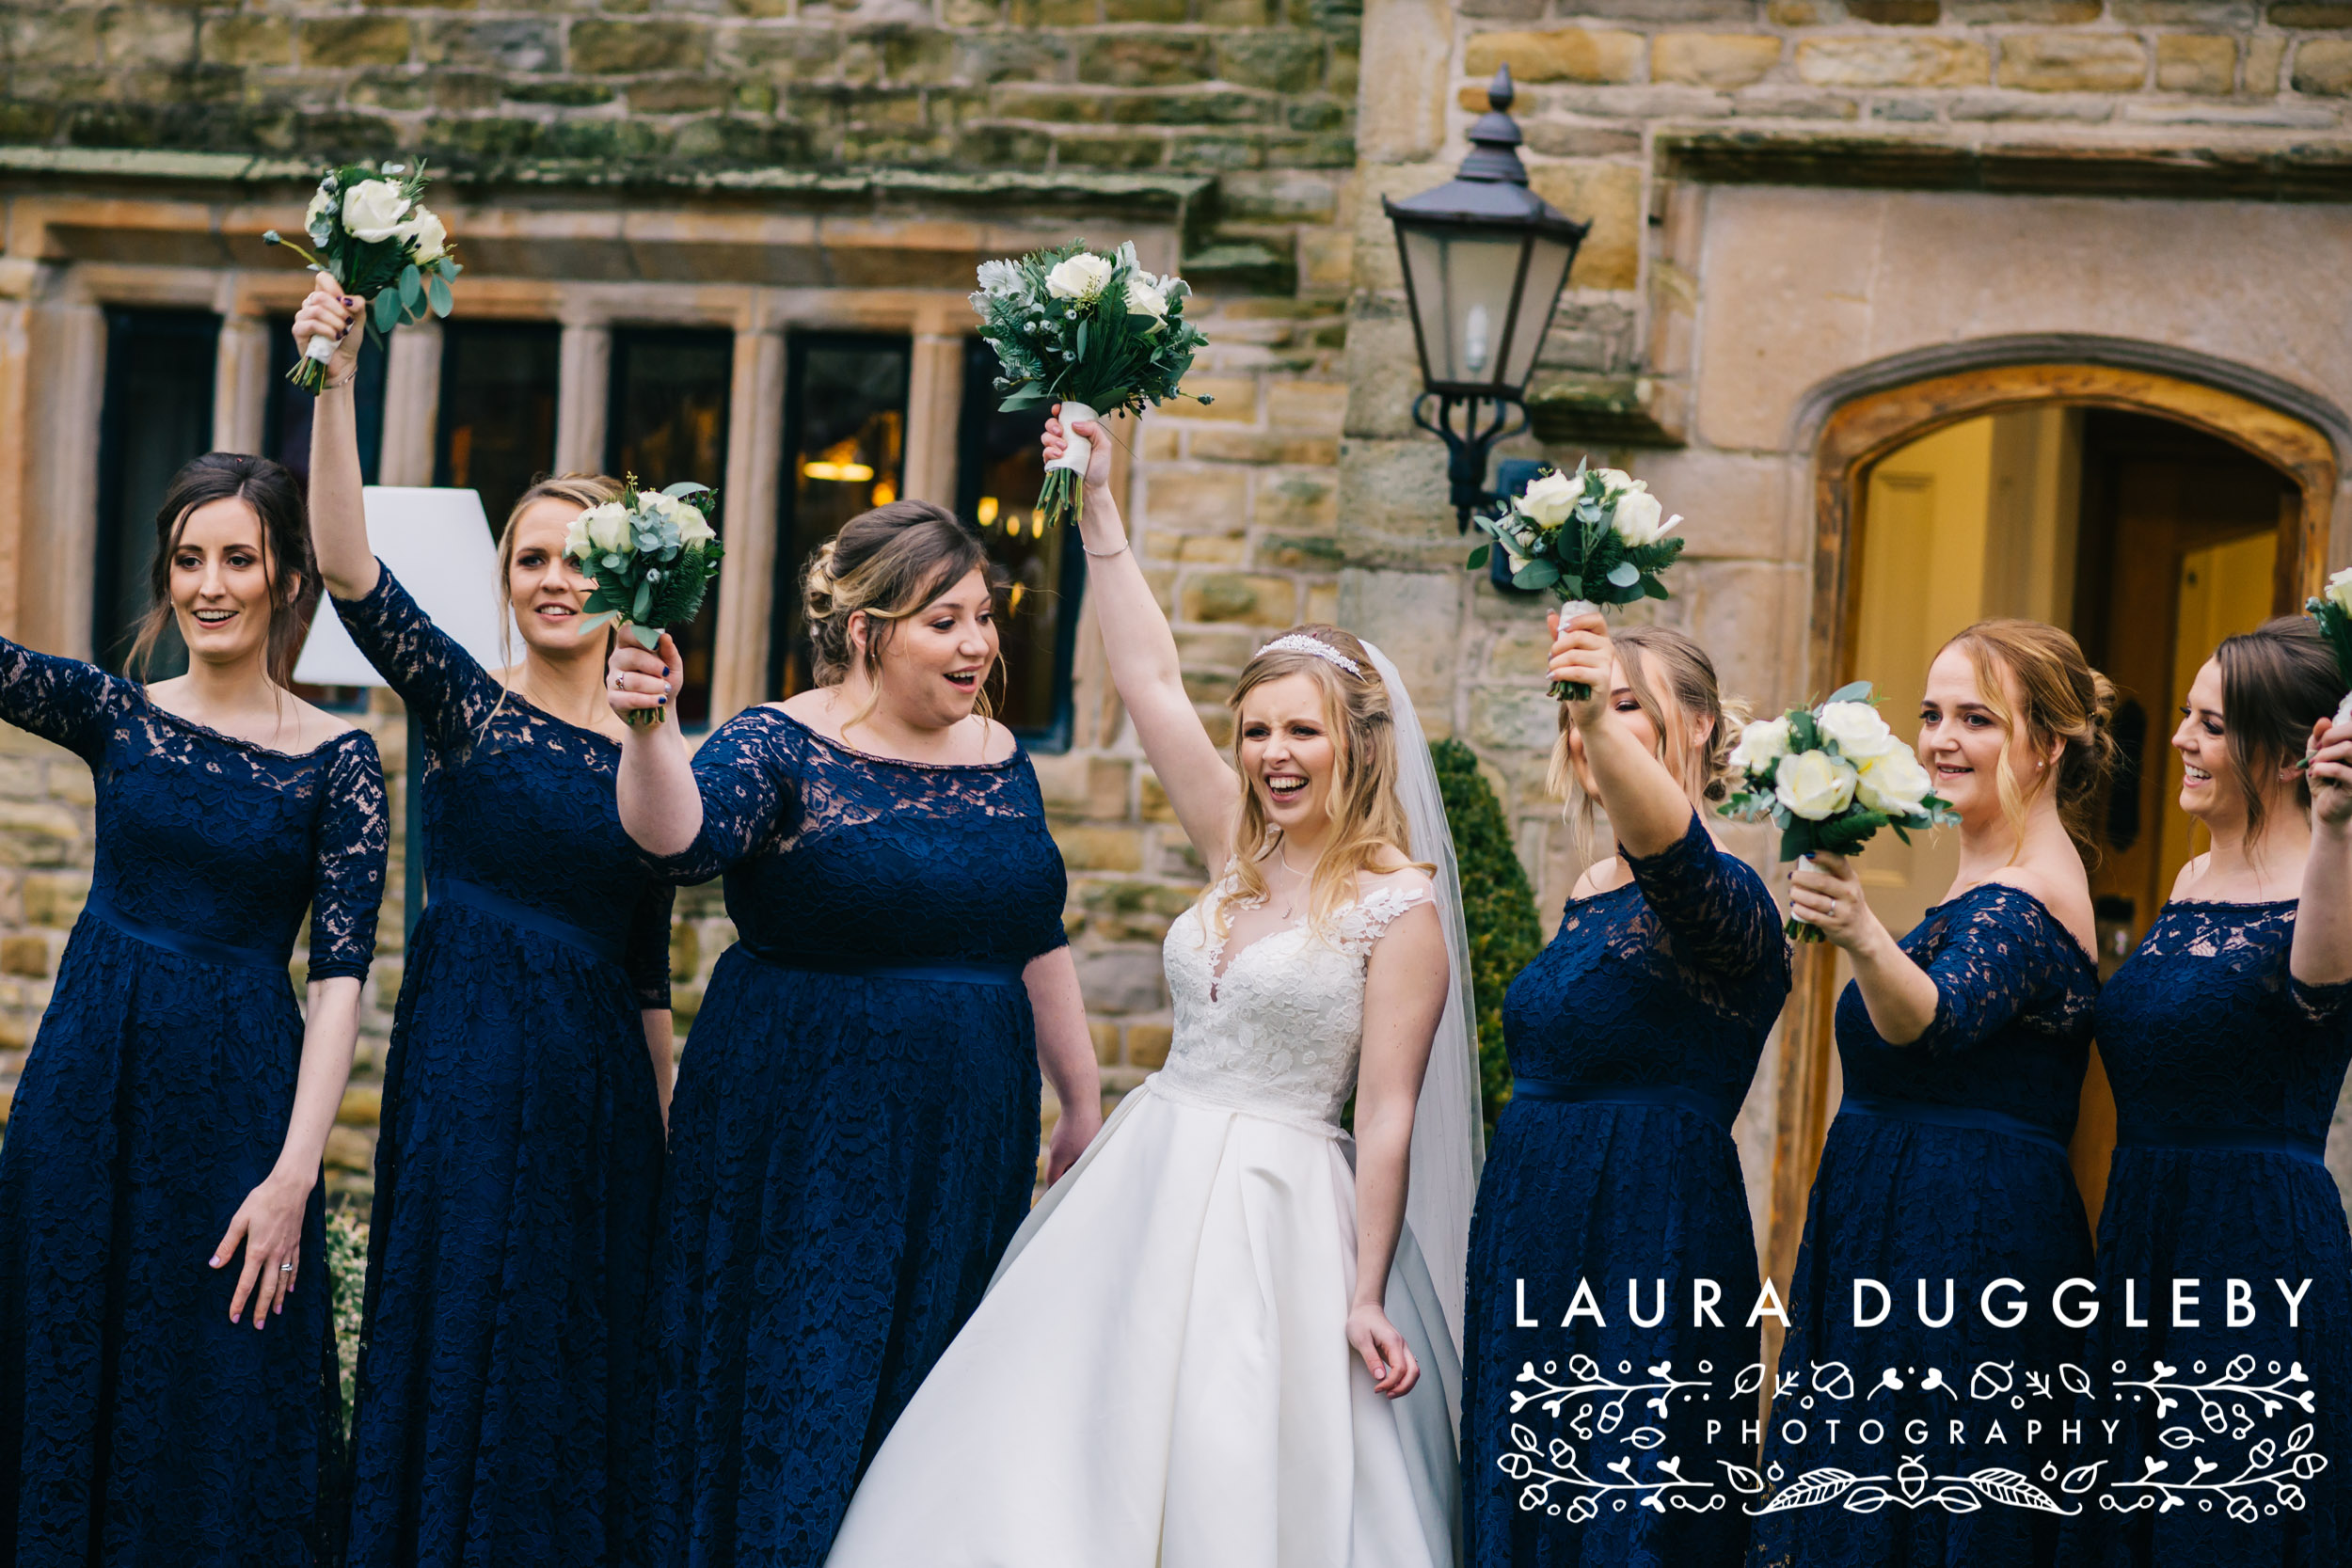 Laura Duggleby Stanley House Wedding Photographer-33.jpg